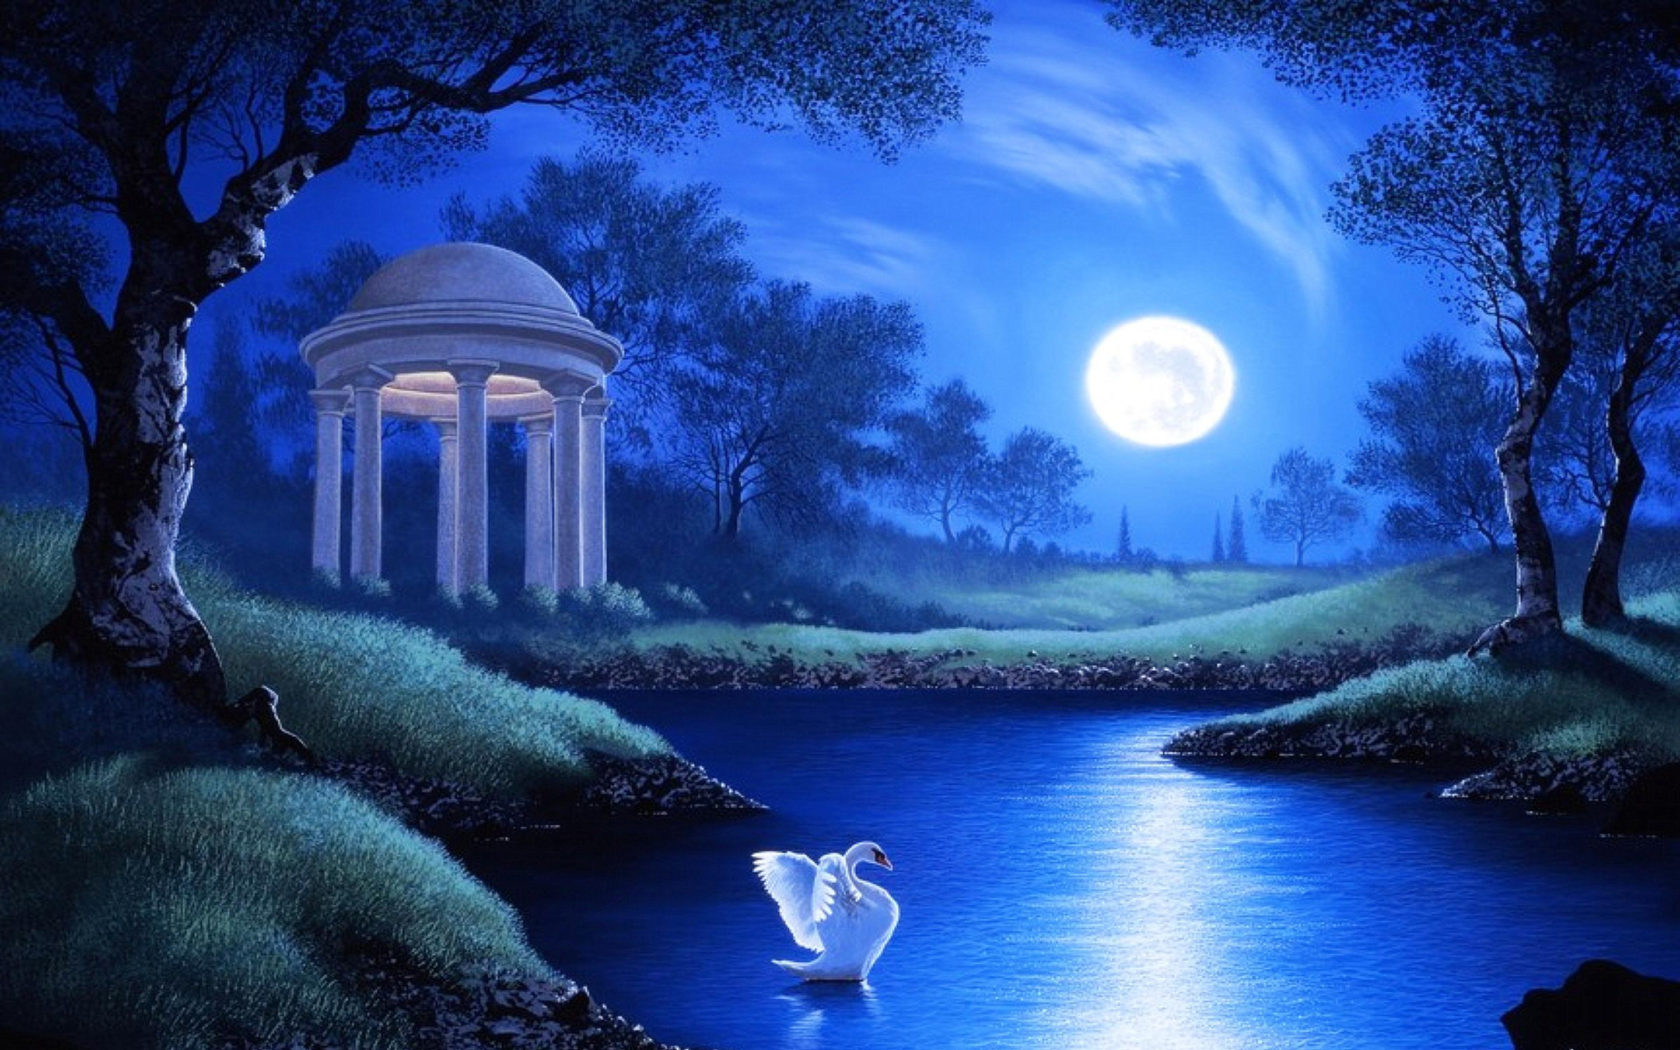 Girl Power Laptop Wallpaper Swan Lake Night Full Moon Trees Grass Hd Wallpaper